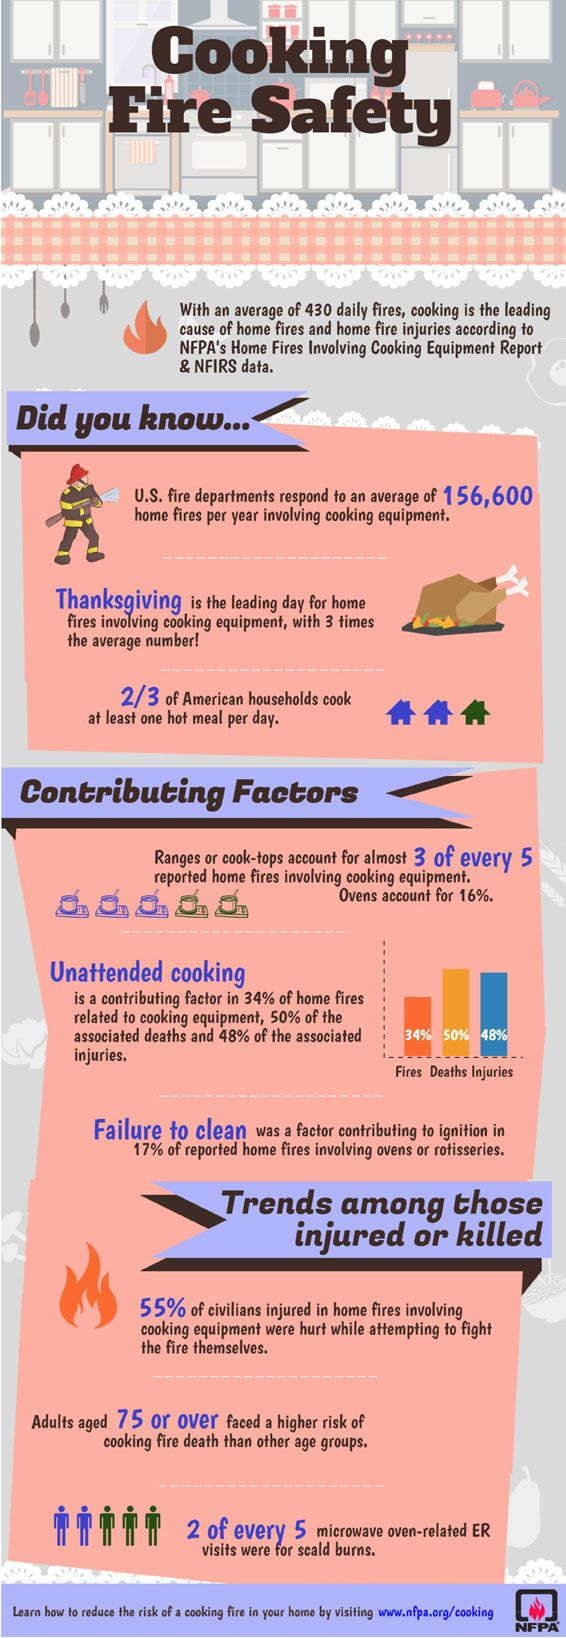 Cooking fire safety infographic even though we are a chimney sweep company we value